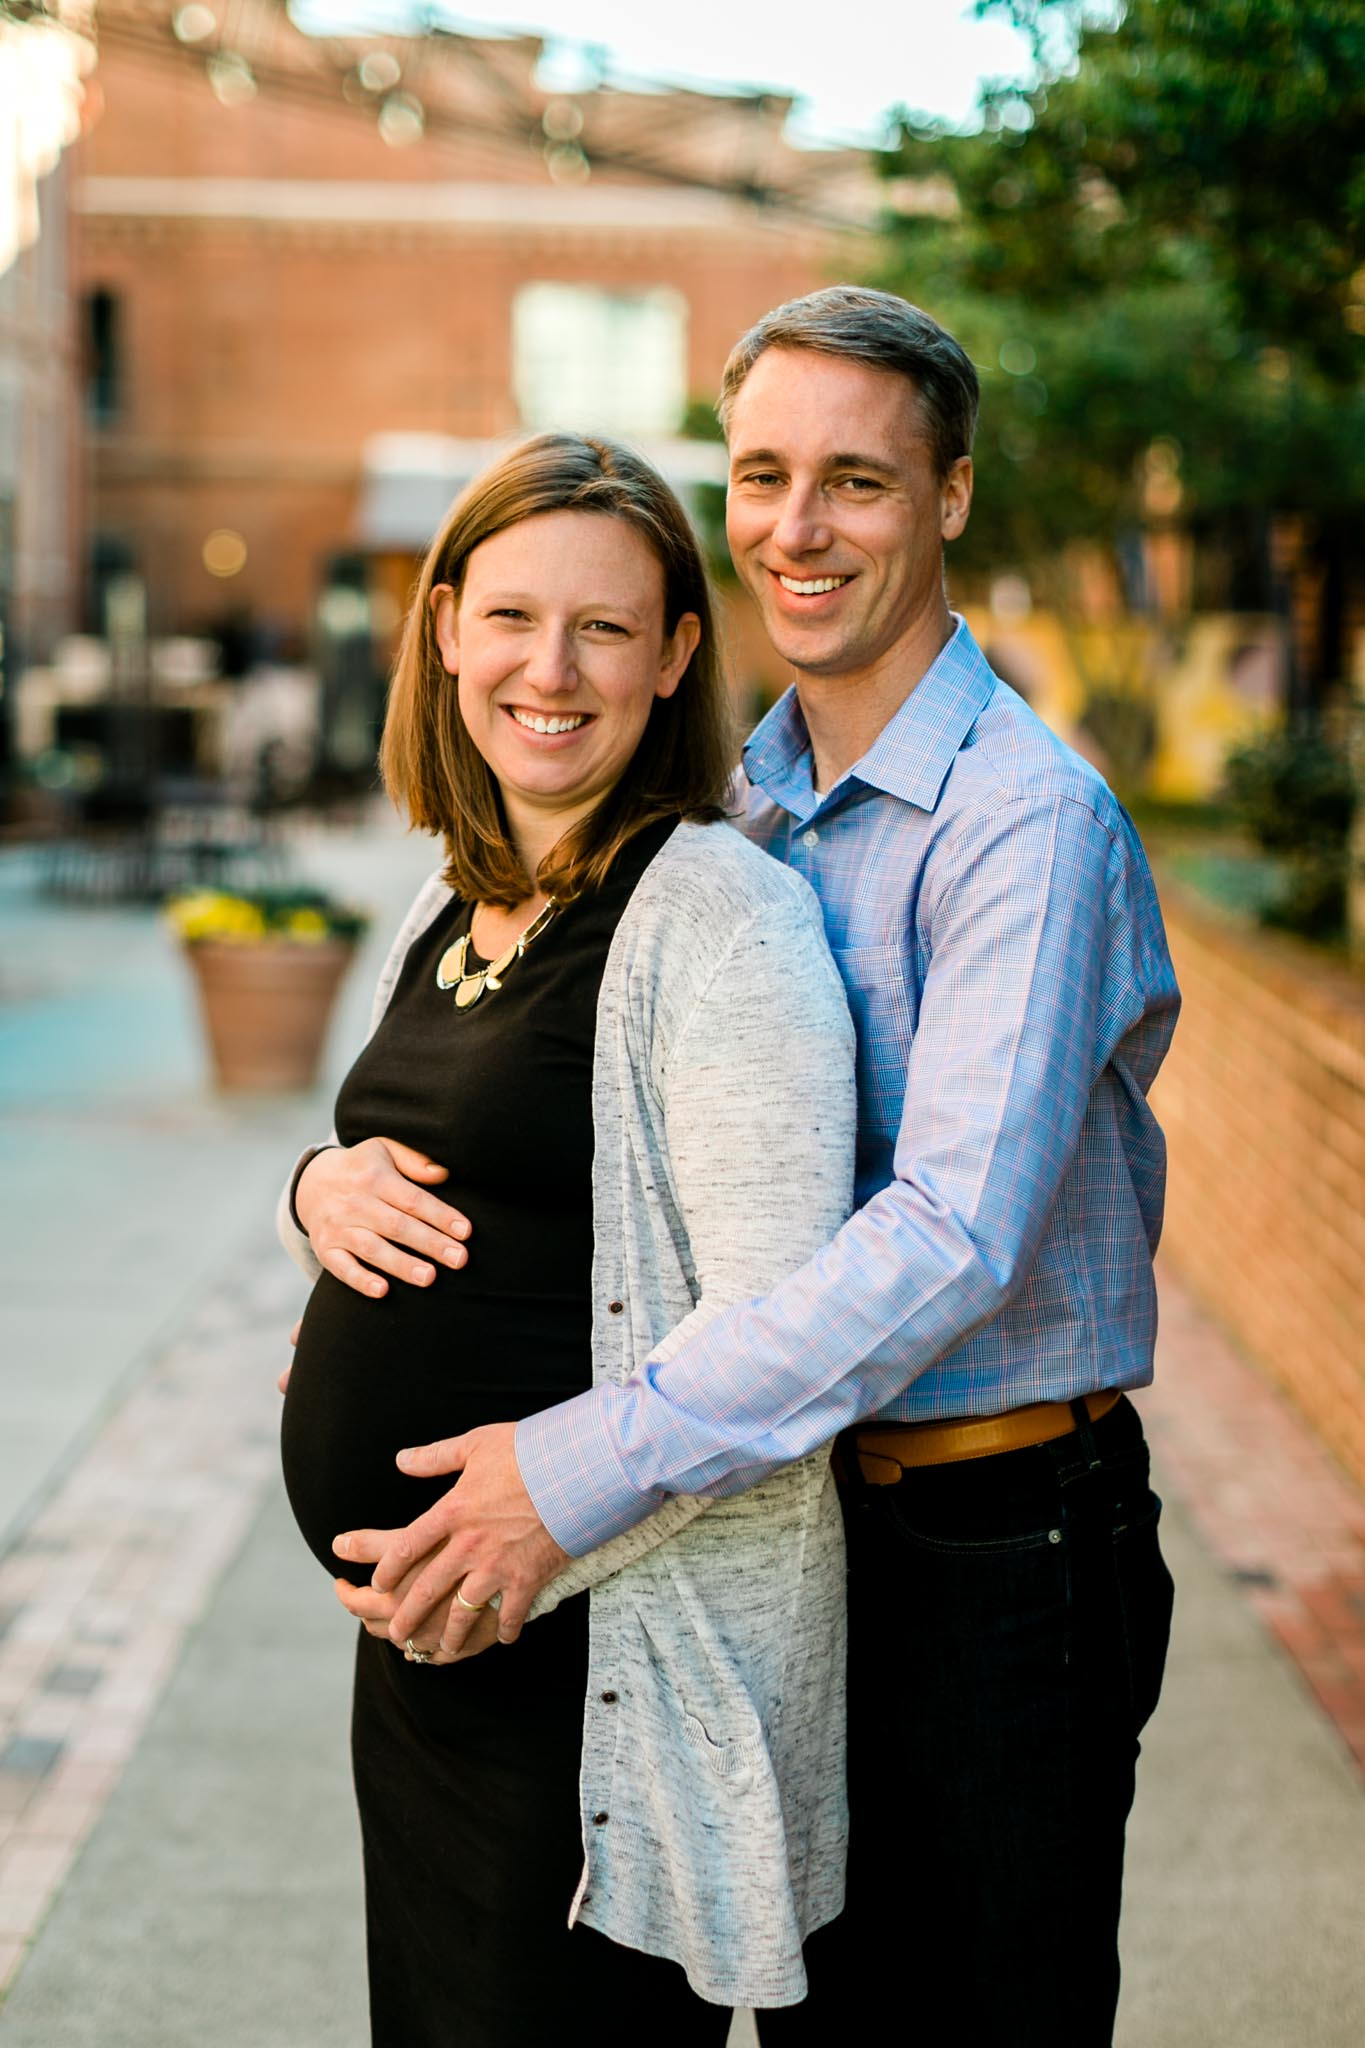 Pregnancy portrait at American Tobacco Campus | Durham Maternity Photographer | By G. Lin Photography